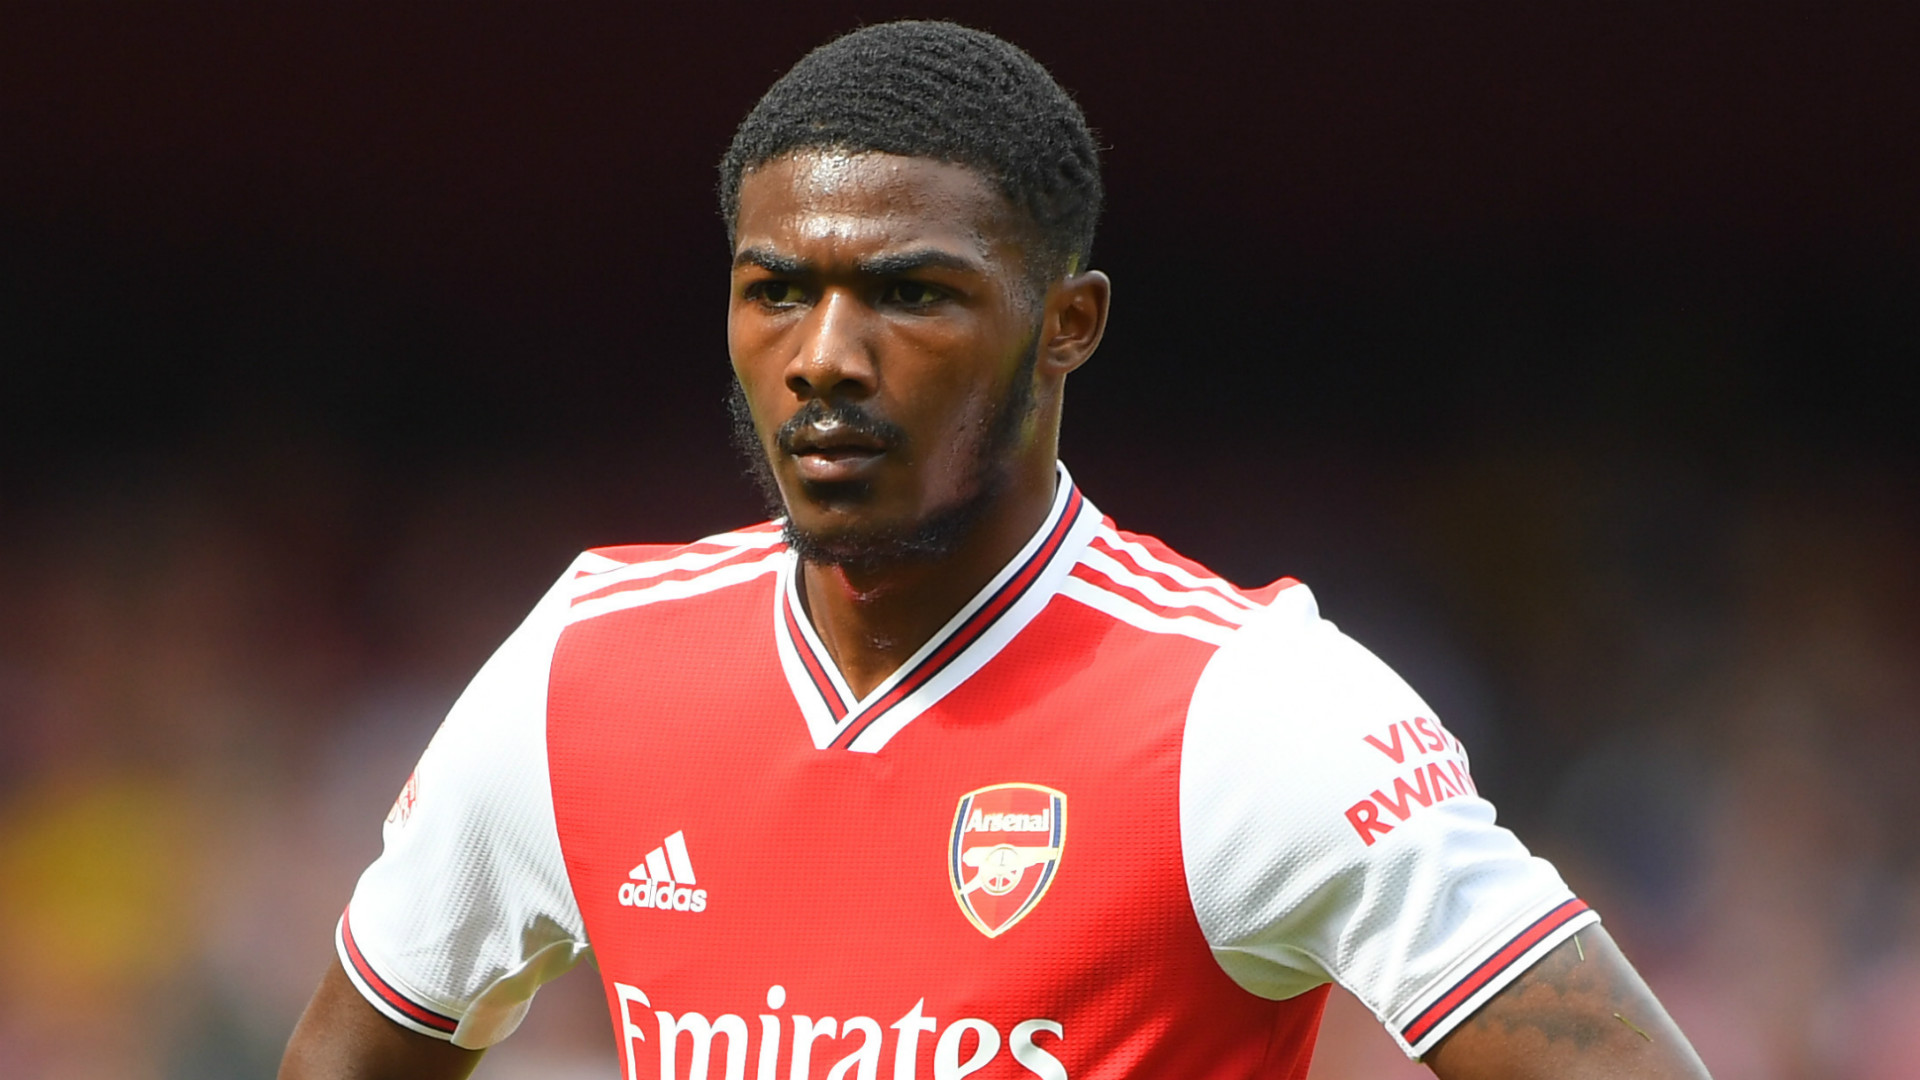 The 22-year old son of father (?) and mother(?) Ainsley Maitland-Niles in 2020 photo. Ainsley Maitland-Niles earned a 0.16 million dollar salary - leaving the net worth at million in 2020